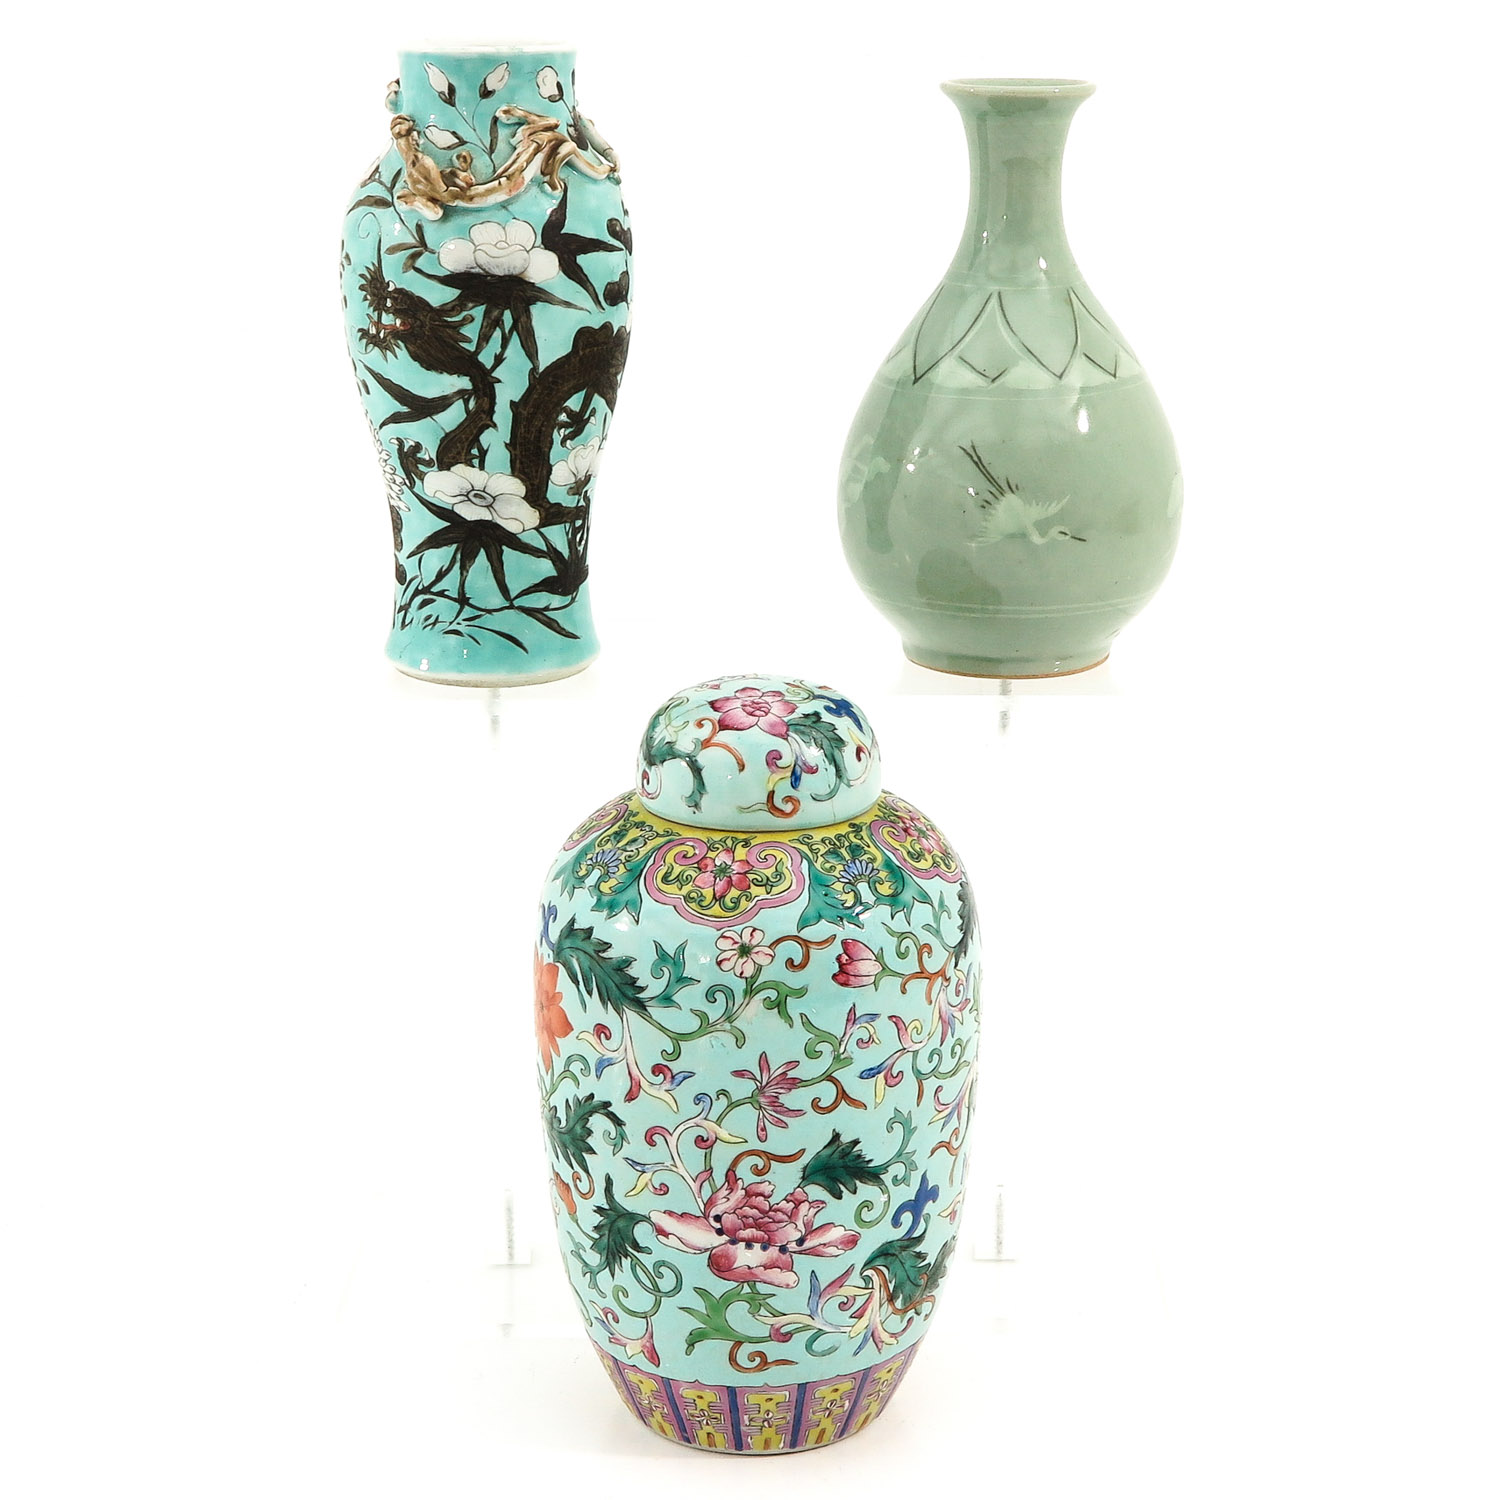 A Collection of 3 Vases